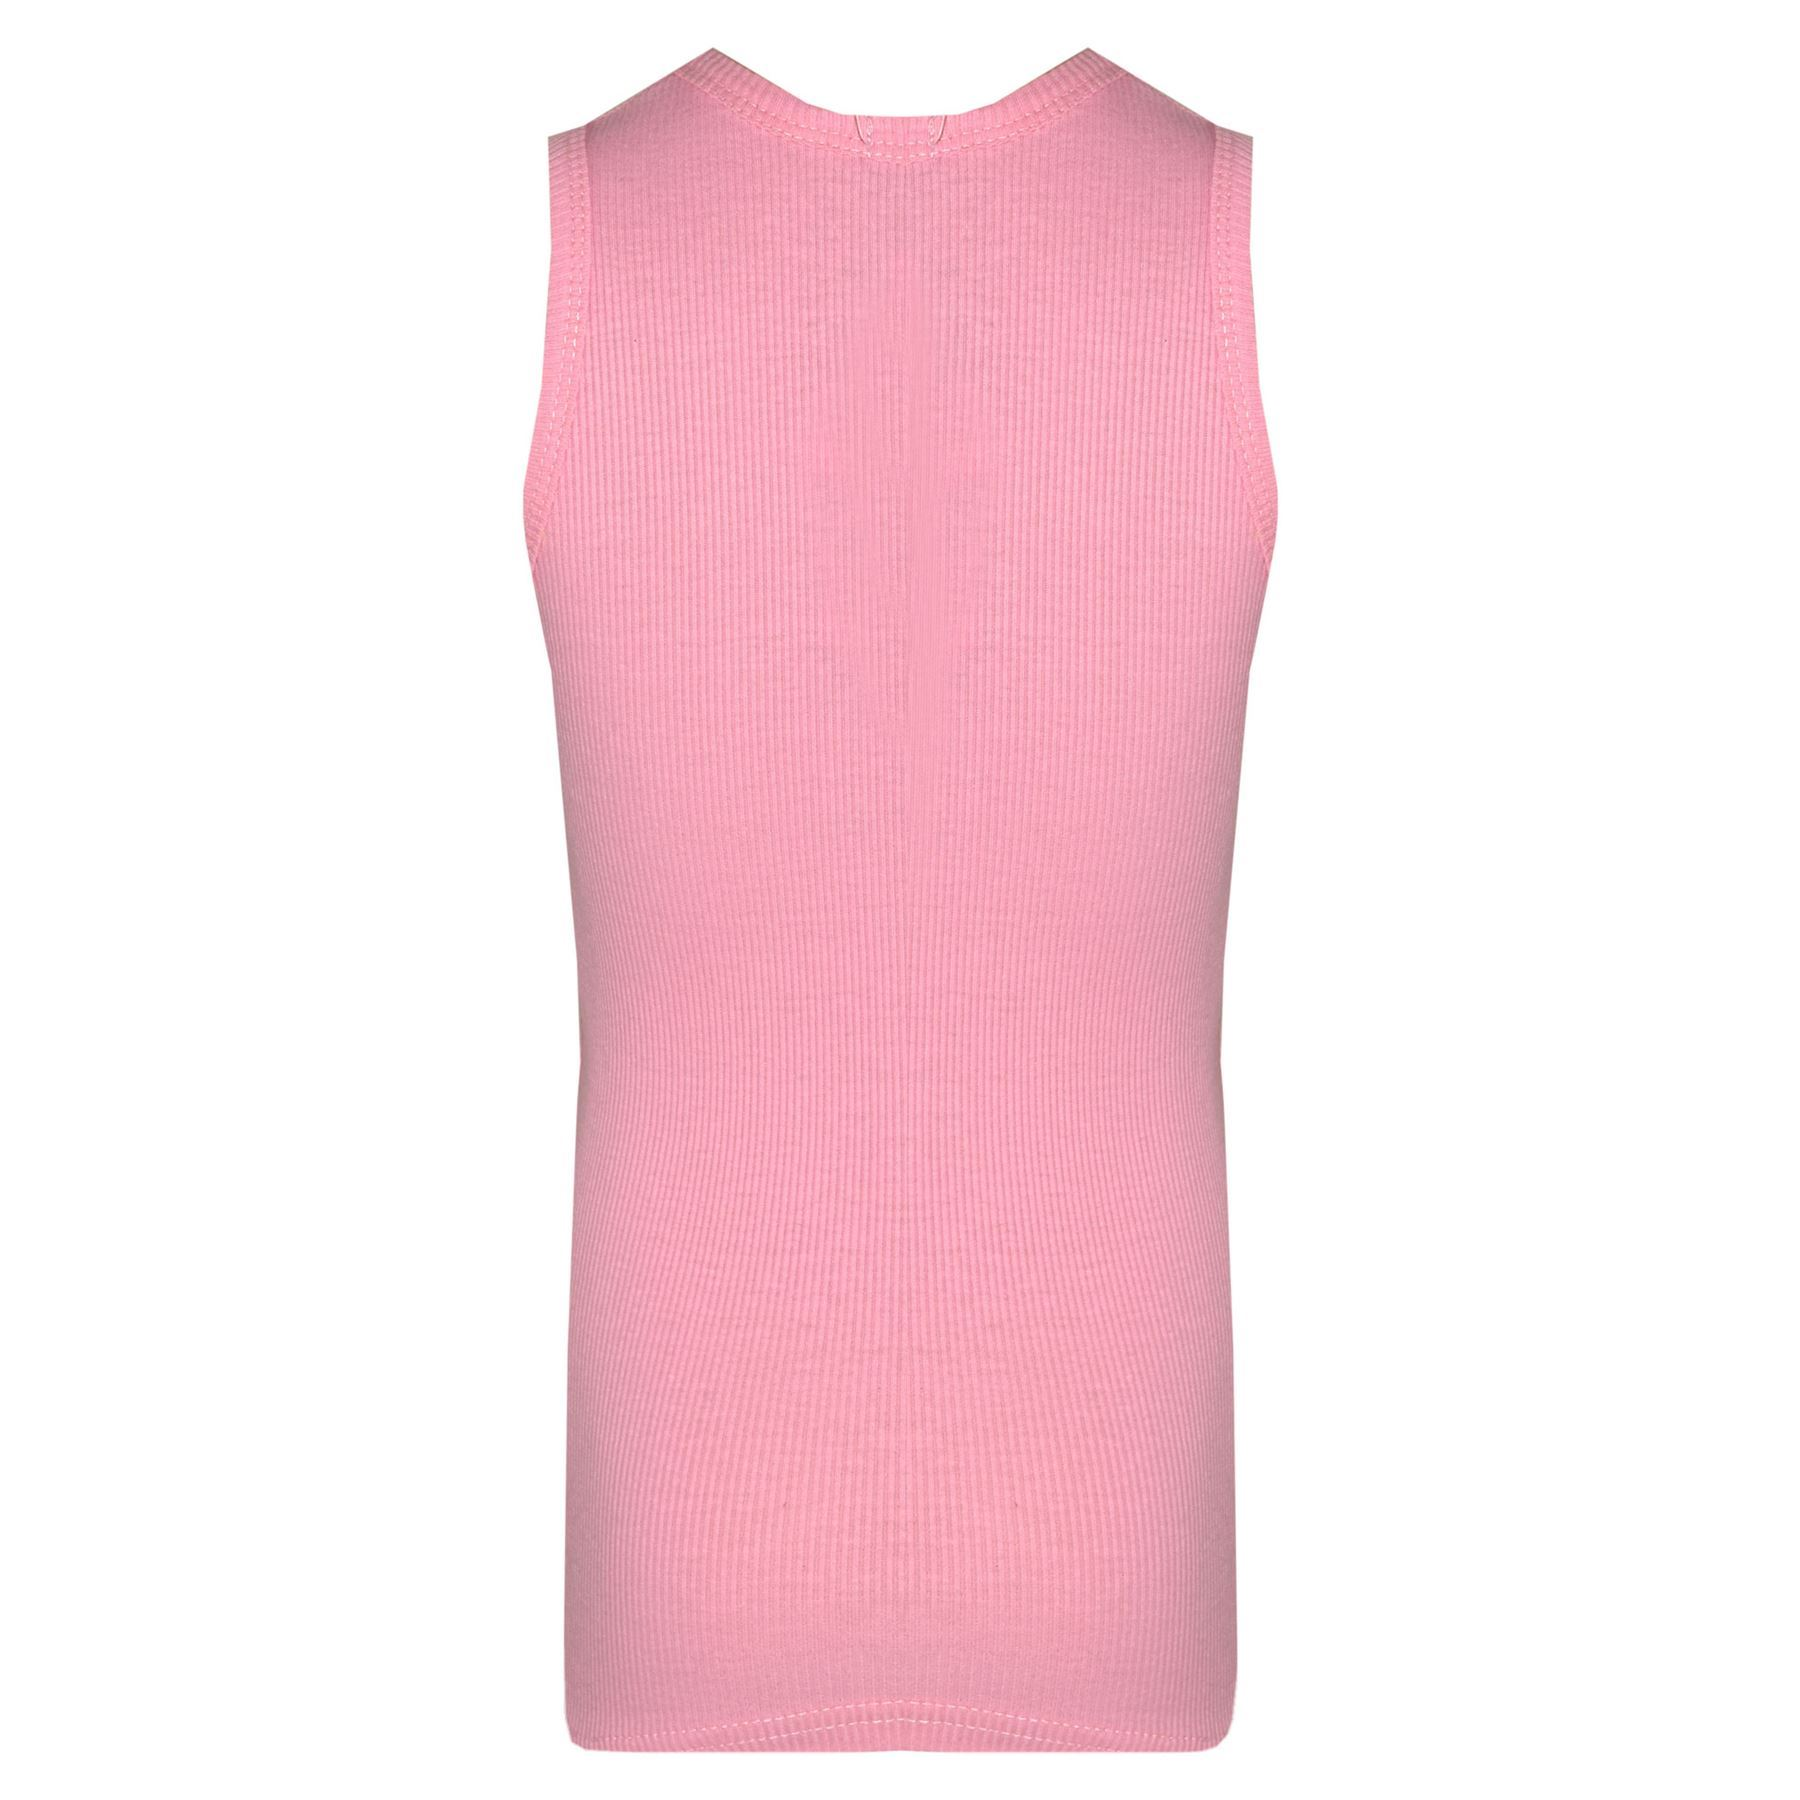 Kids Girls Ribbed Vest Top 100/% Cotton Fashion Tank Tops T Shirt New Age 5-13 Yr